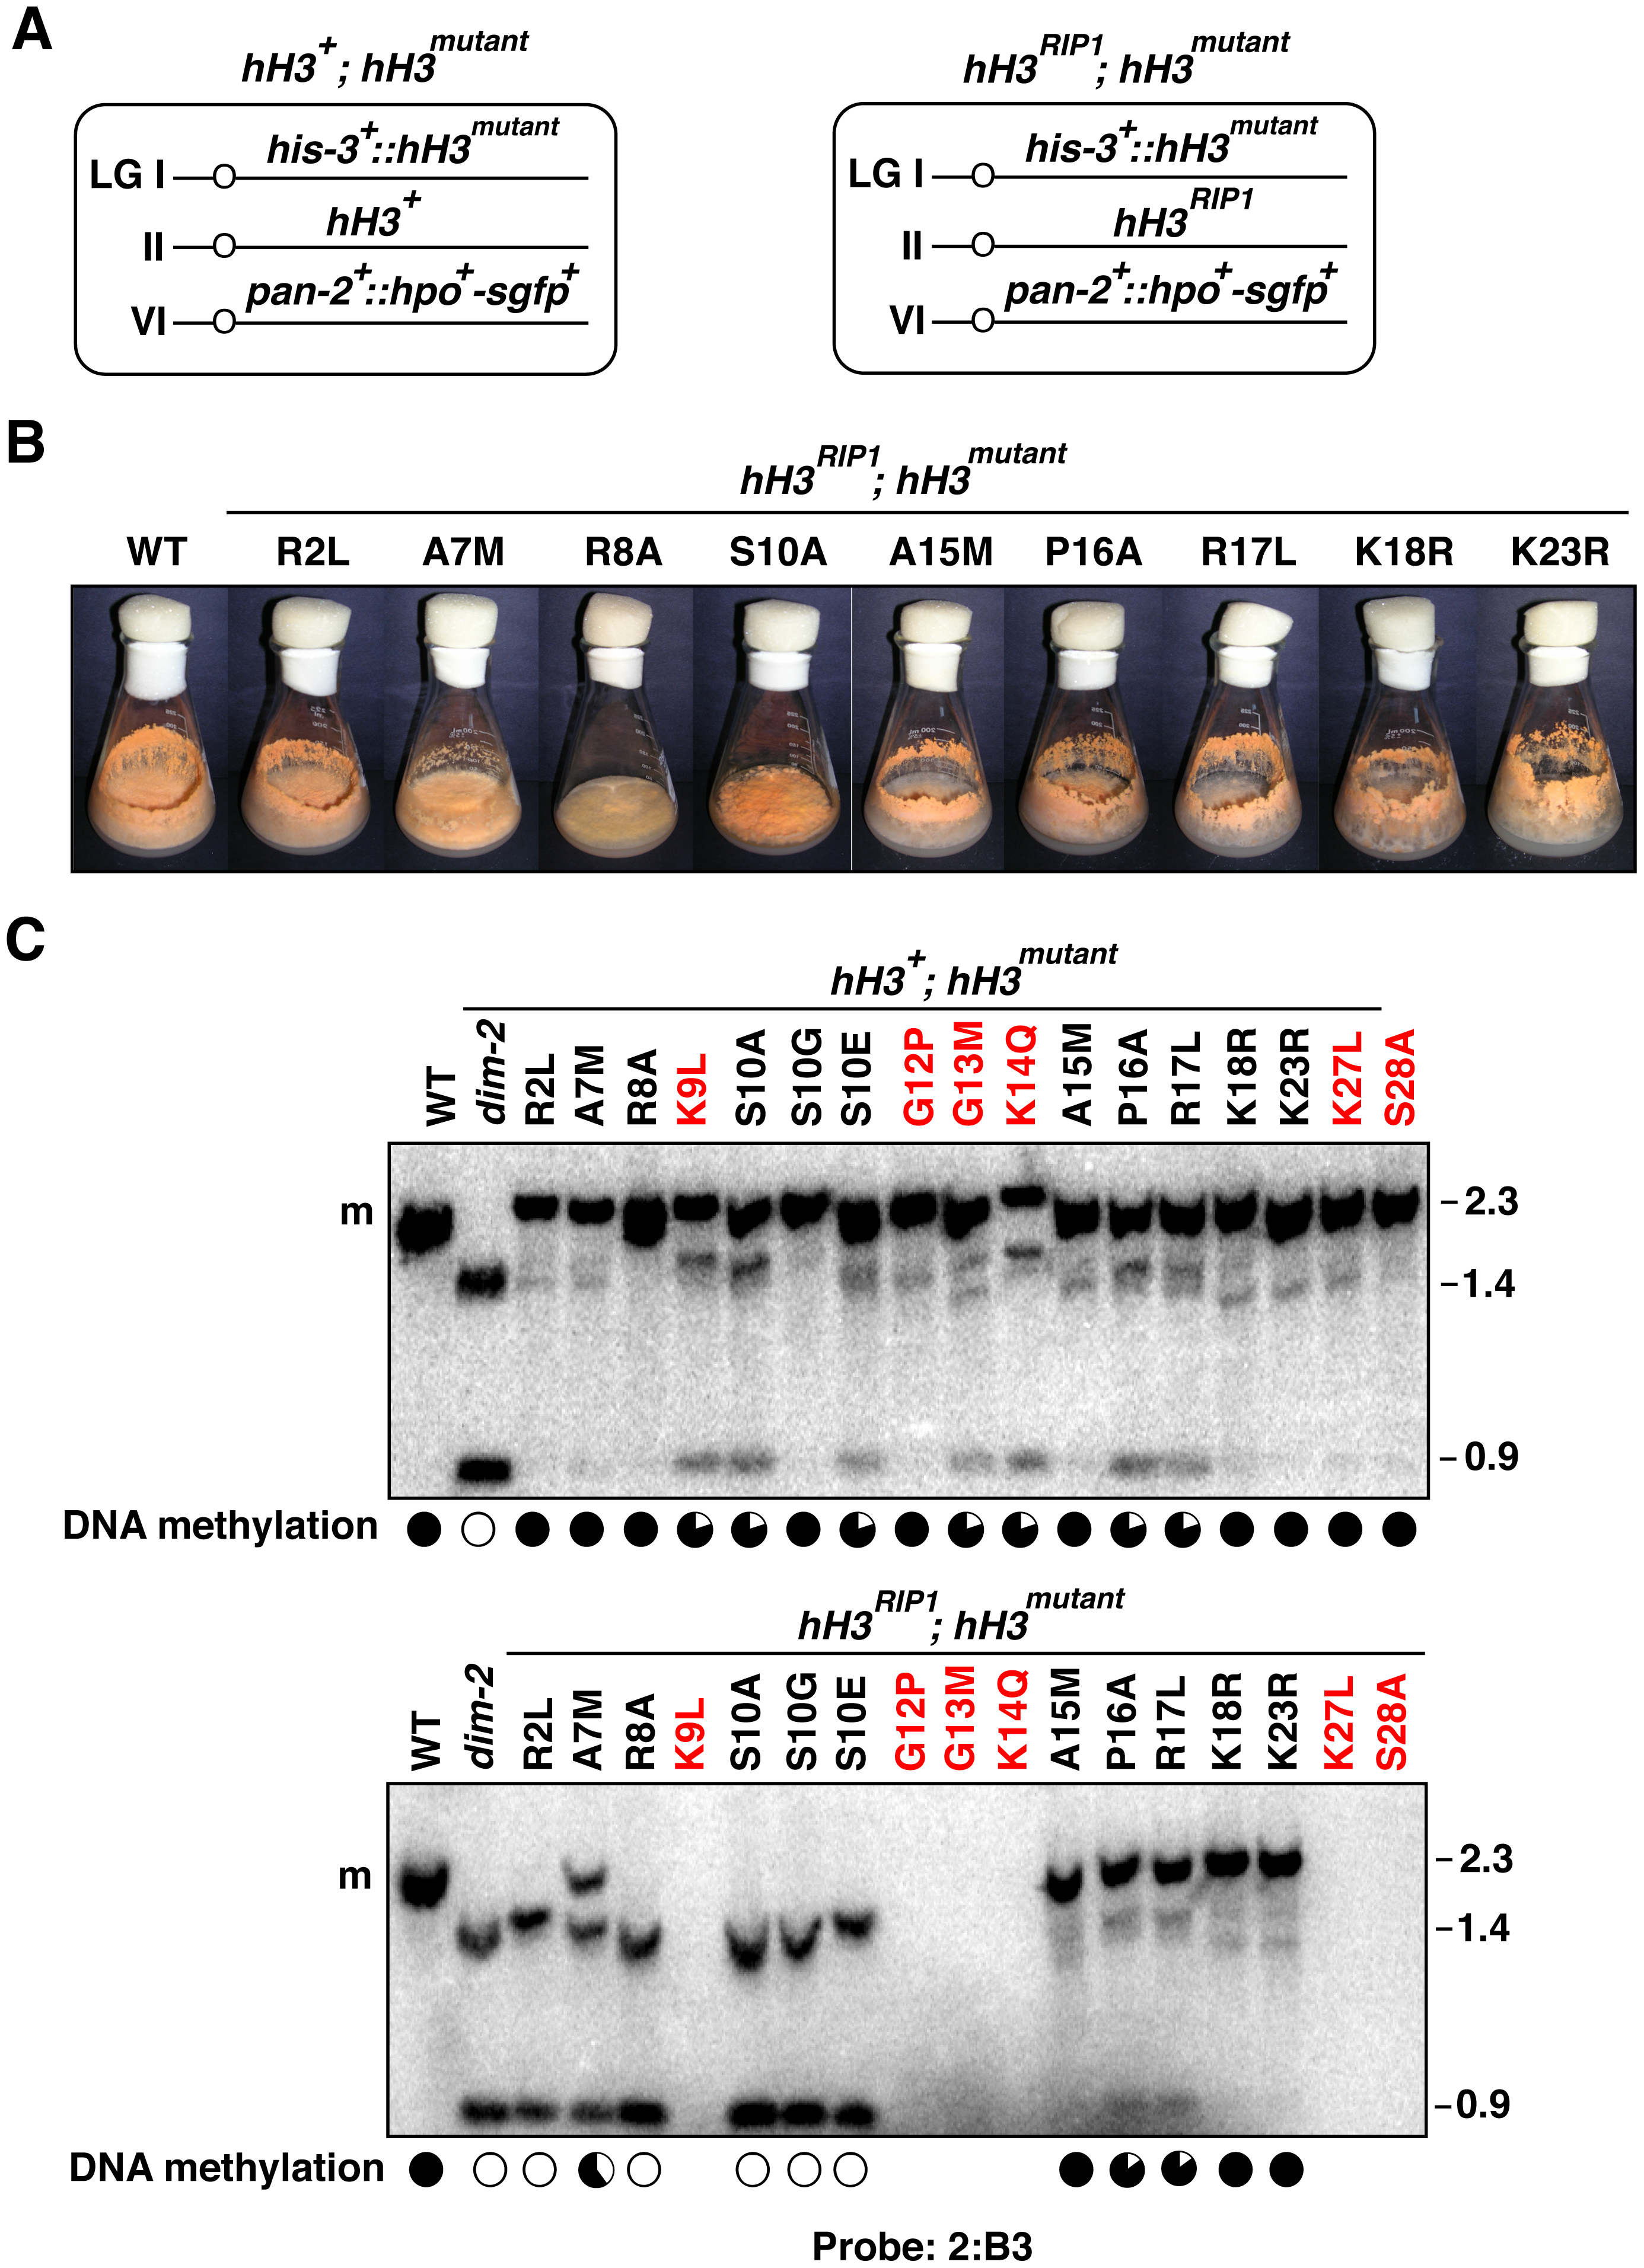 Substitutions in the H3 tail can cause recessive or semi-dominant loss of DNA methylation.